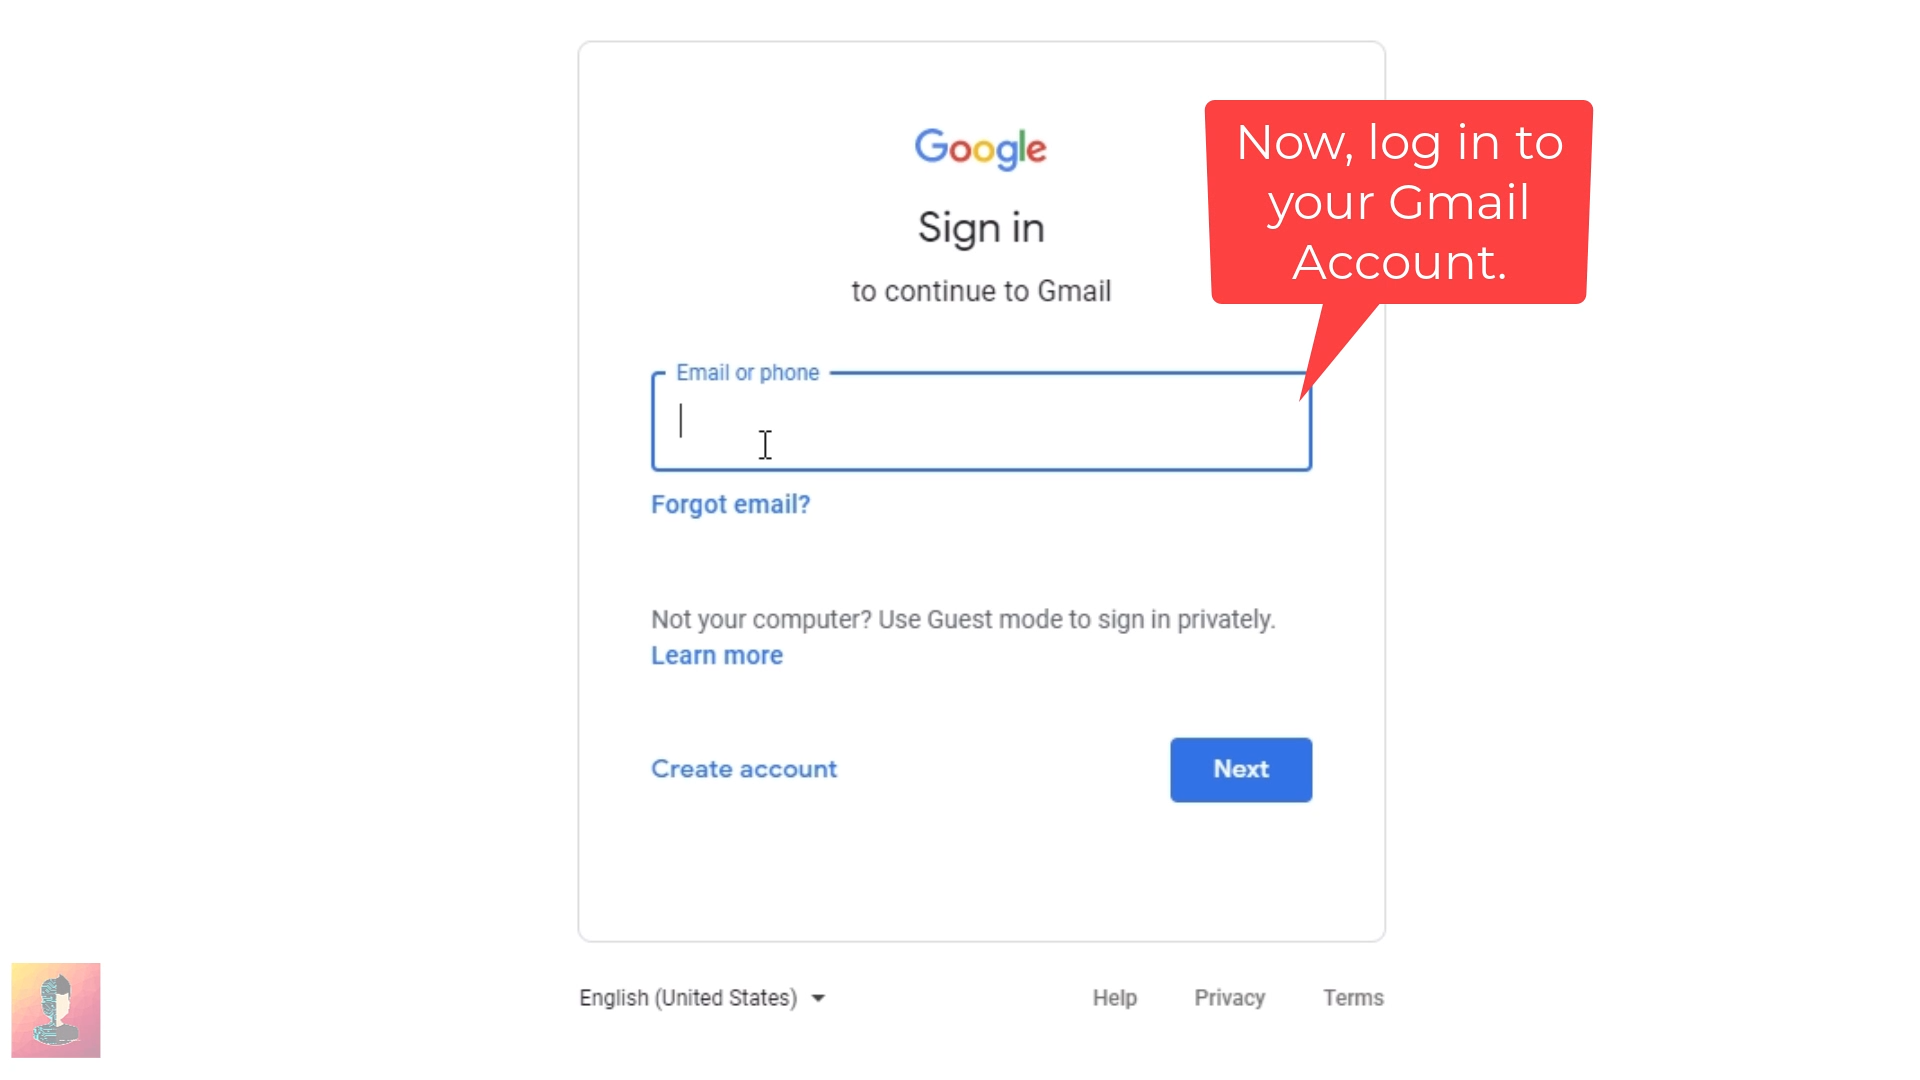 Step_03 How to enable Dark Mode on Gmail